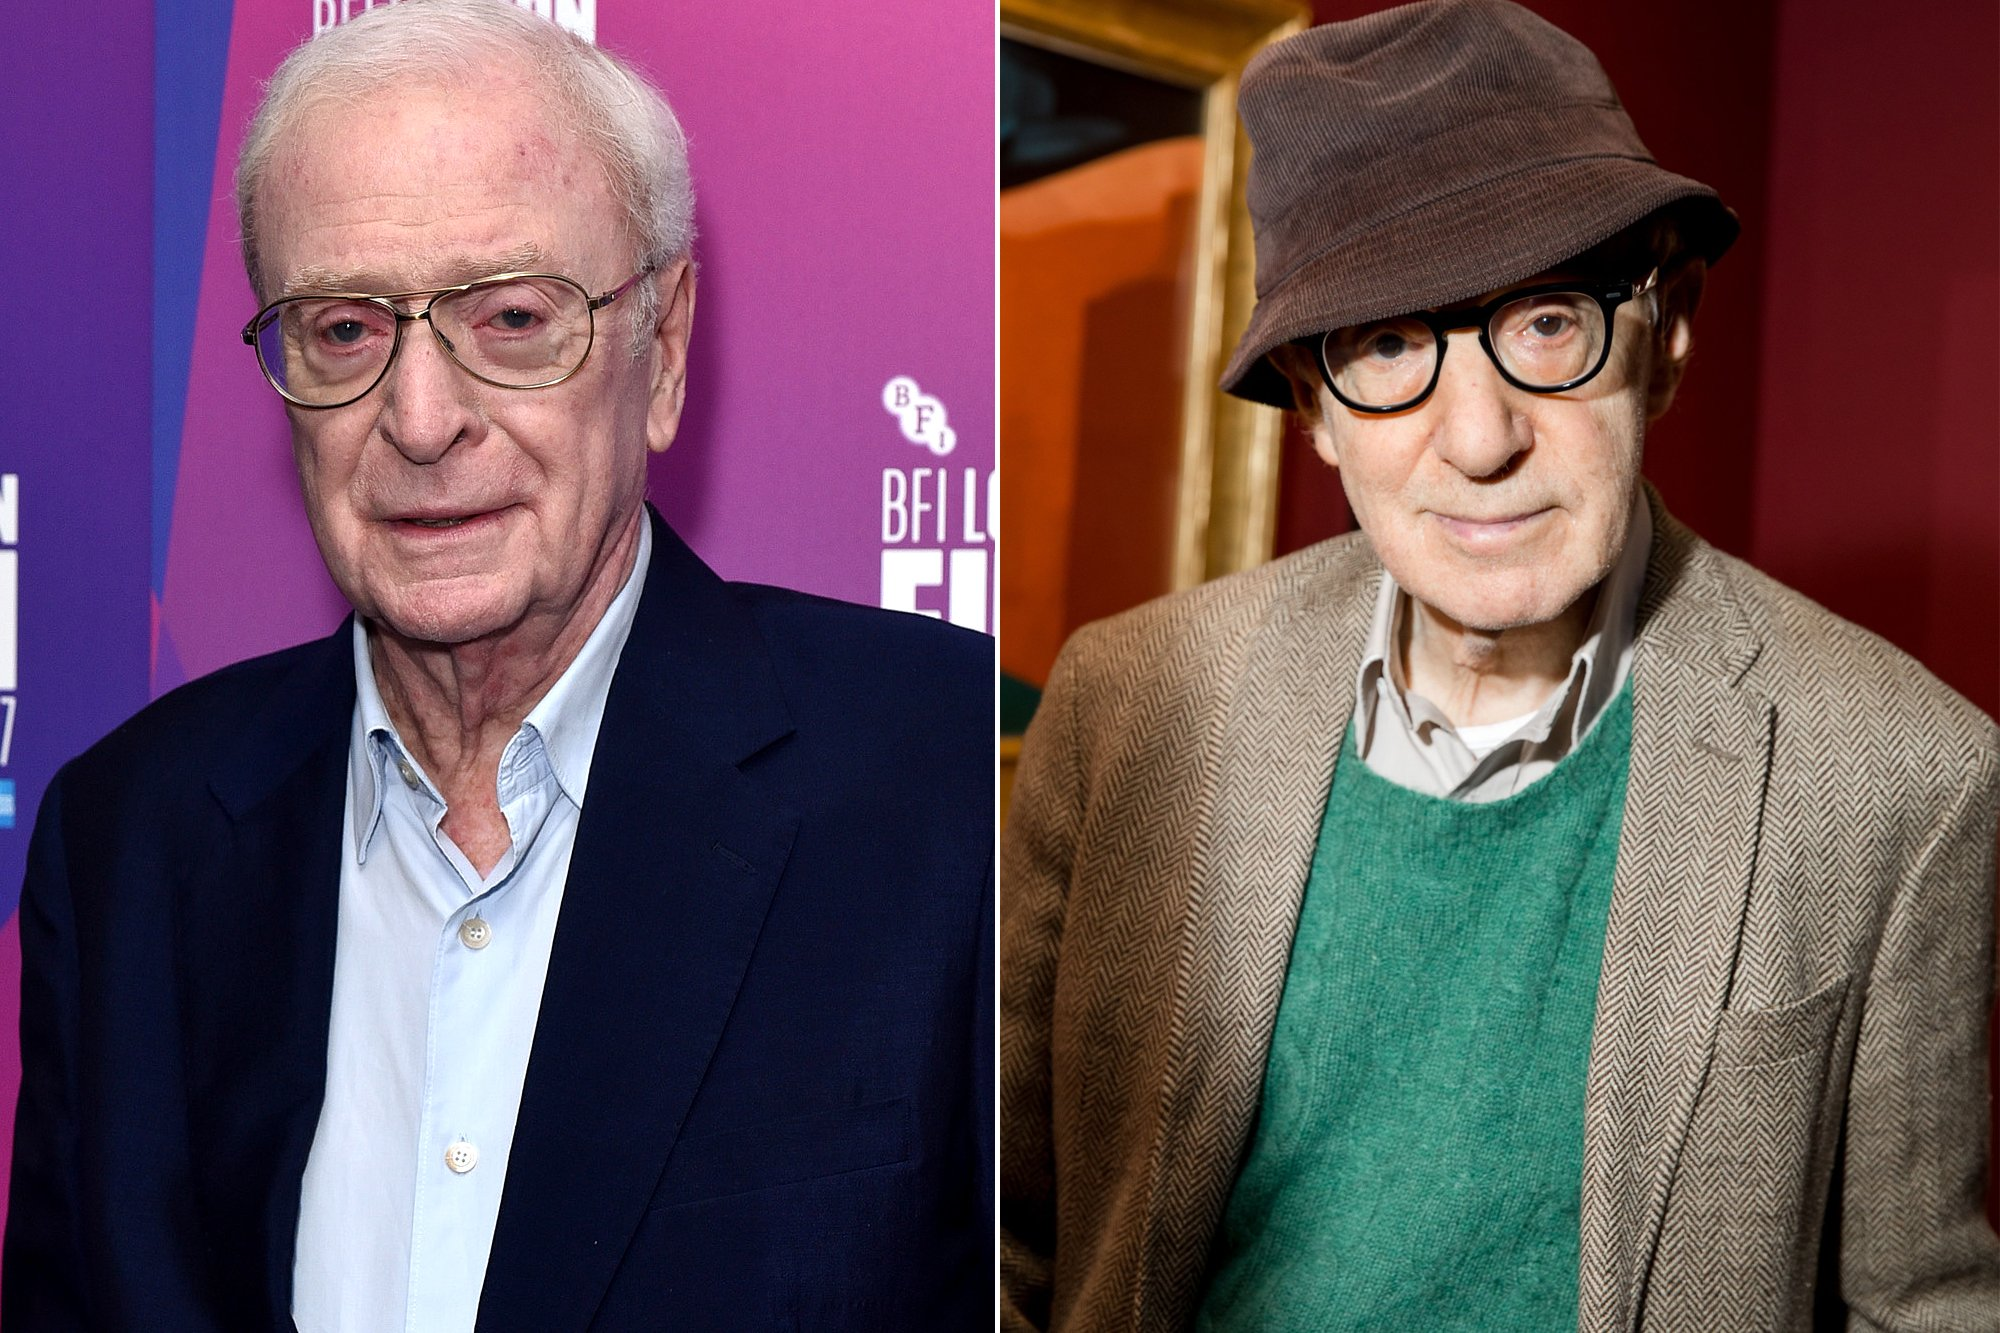 Michael Caine says he will never work with Woody Allen again